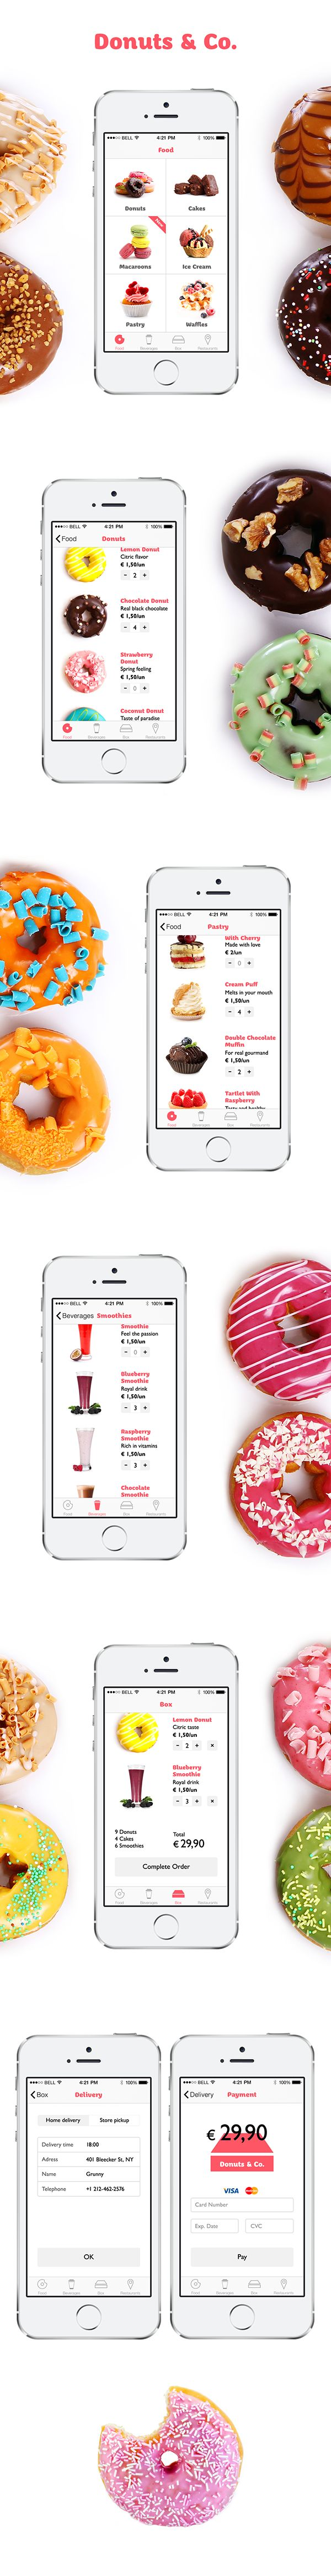 Donuts & Co. App on Behance